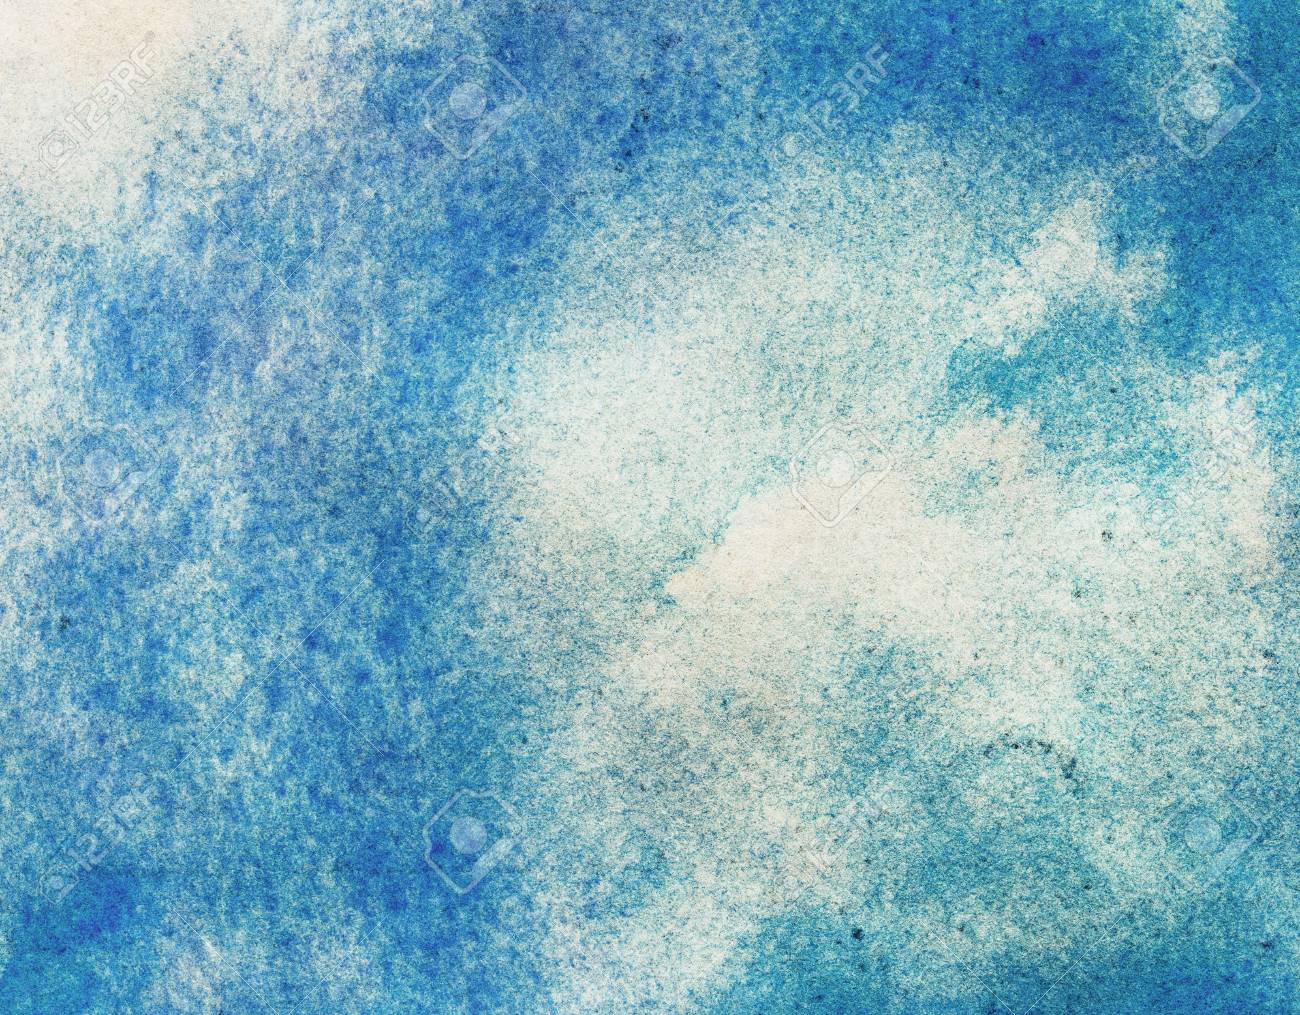 Abstract grunge watercolor background Stock Photo - 18090815